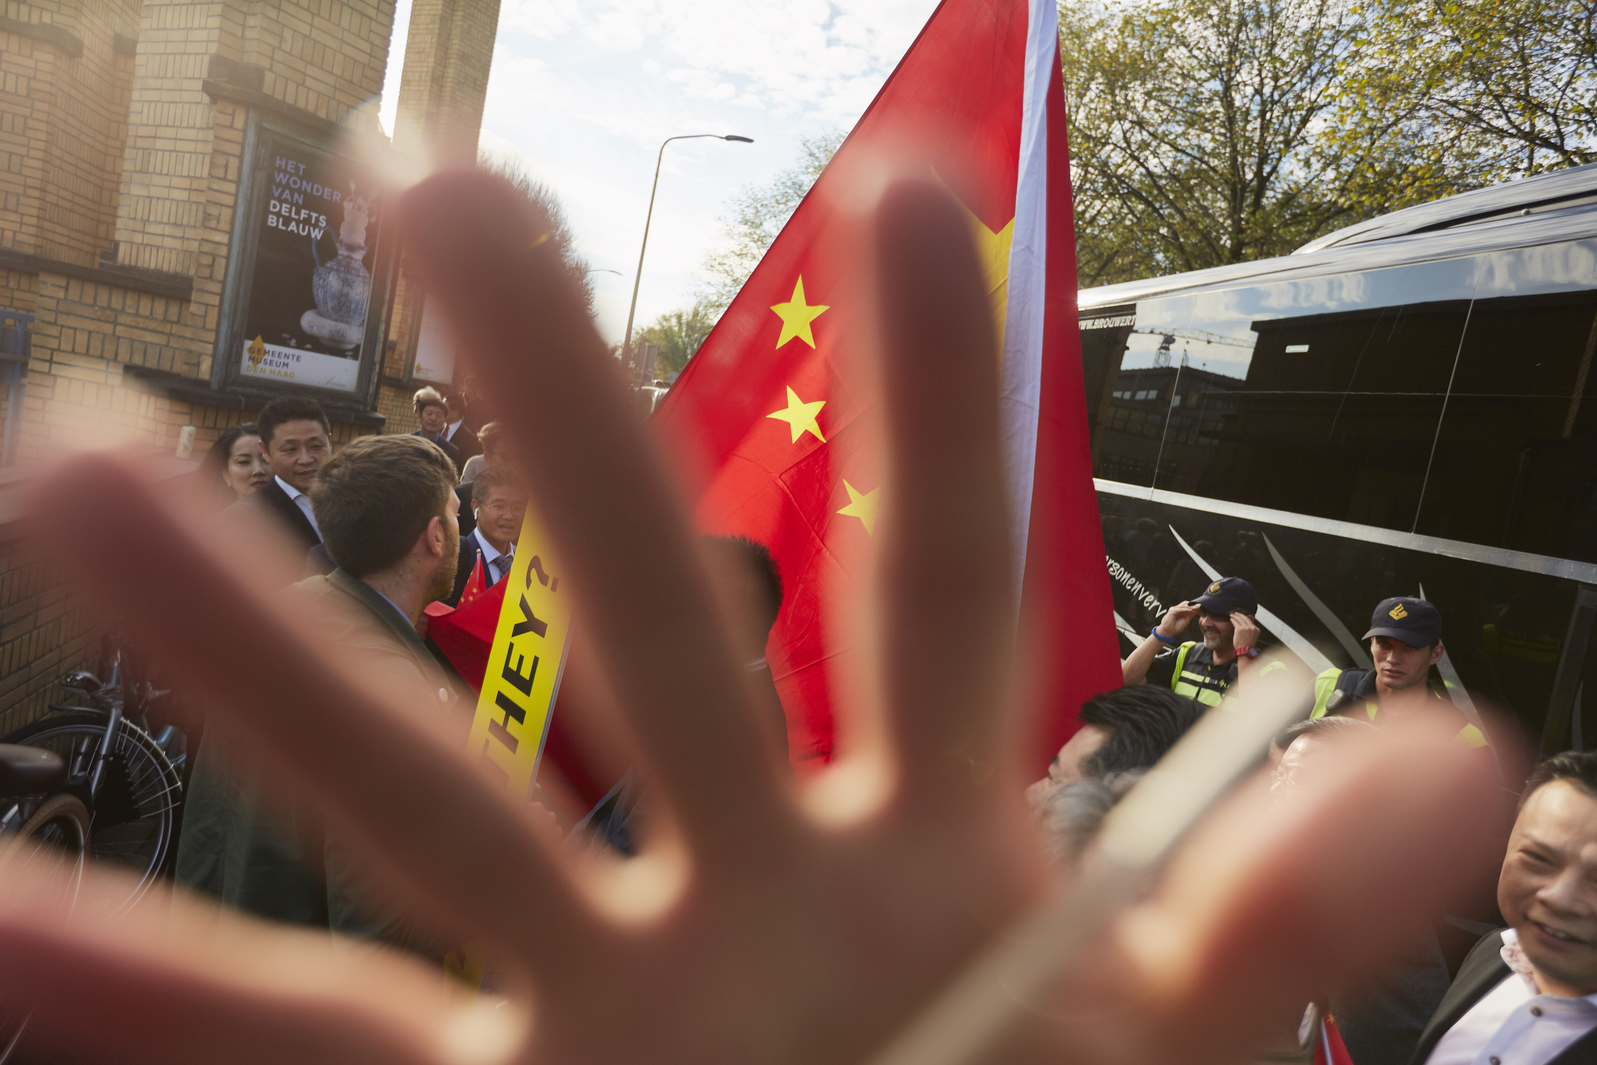 China: Labour activist detained without lawyer